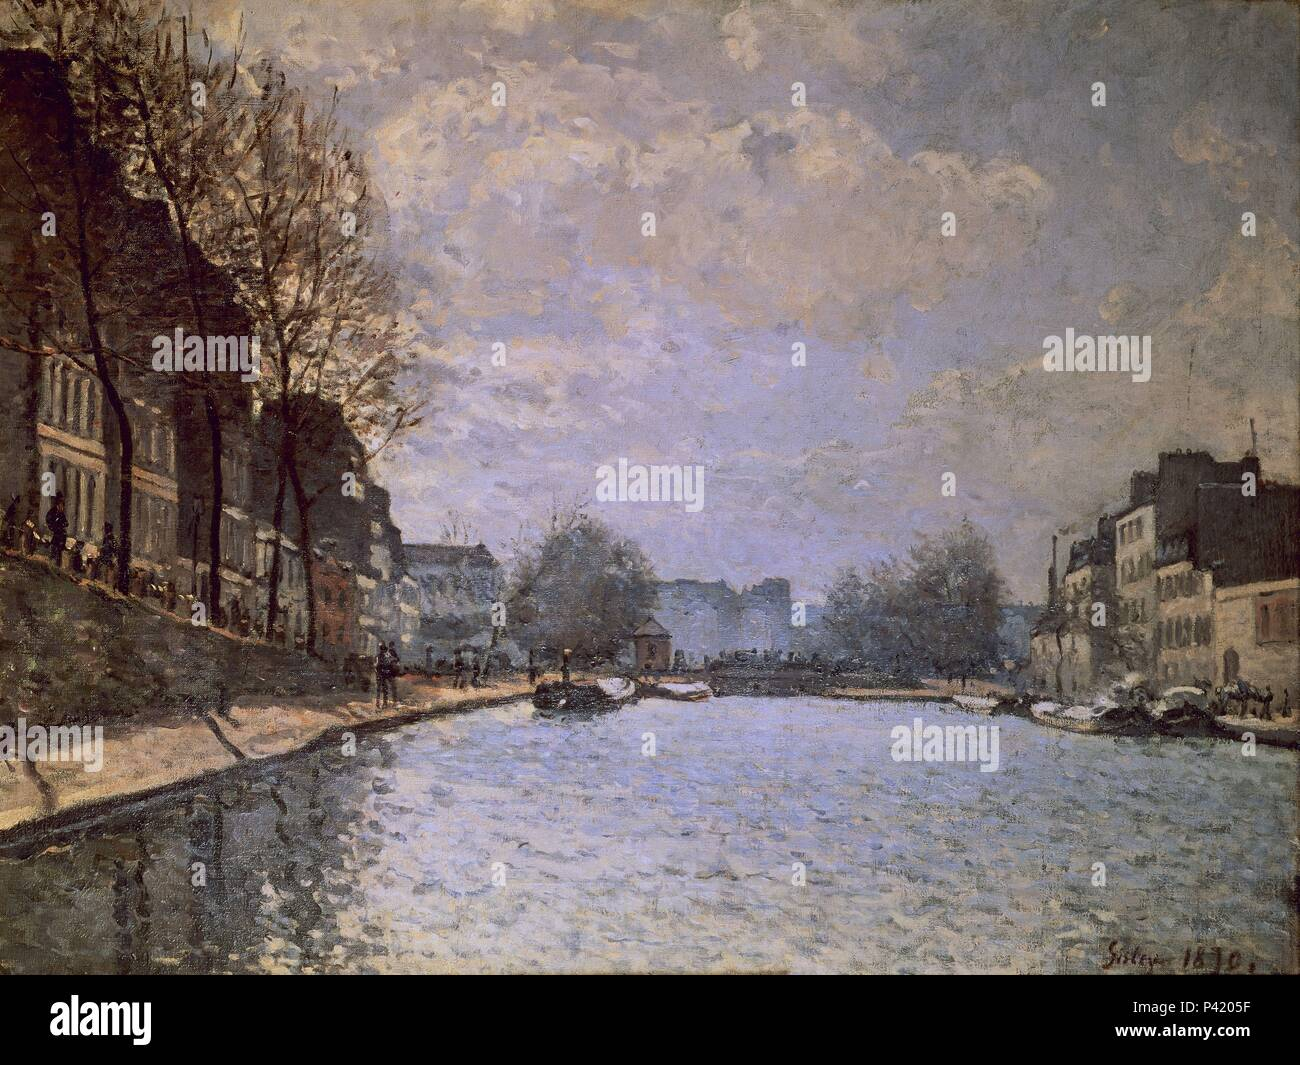 EL CANAL DE SAINT MARTIN. Author: Alfred Sisley (1839-1899). Location: MUSEE D'ORSAY, FRANCE. - Stock Image